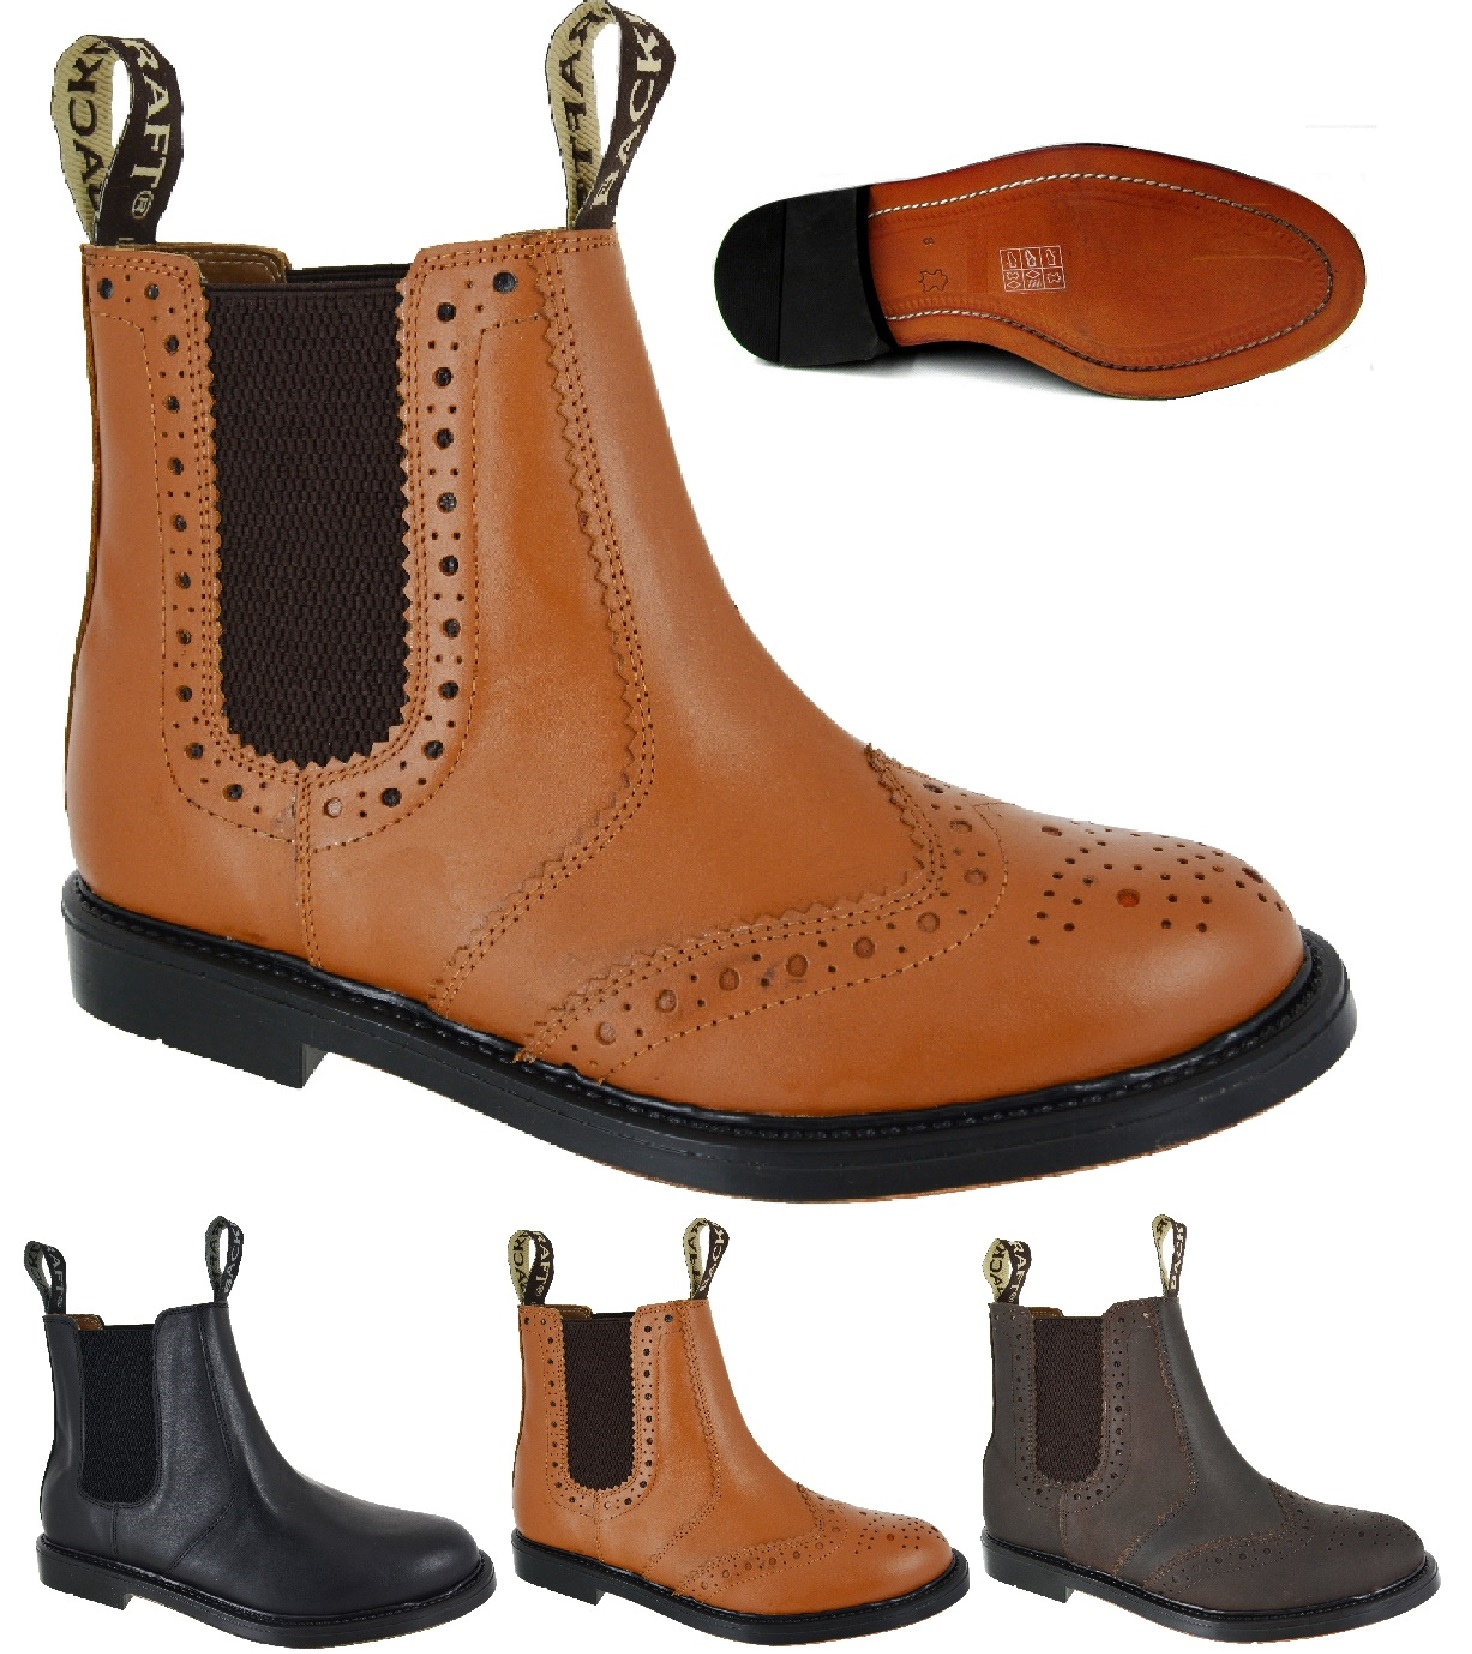 NEW GENTS MENS DEALER CHELSEA ANKLE LEATHER SMART WORK BROGUE SLIP ON BOOTS SIZE